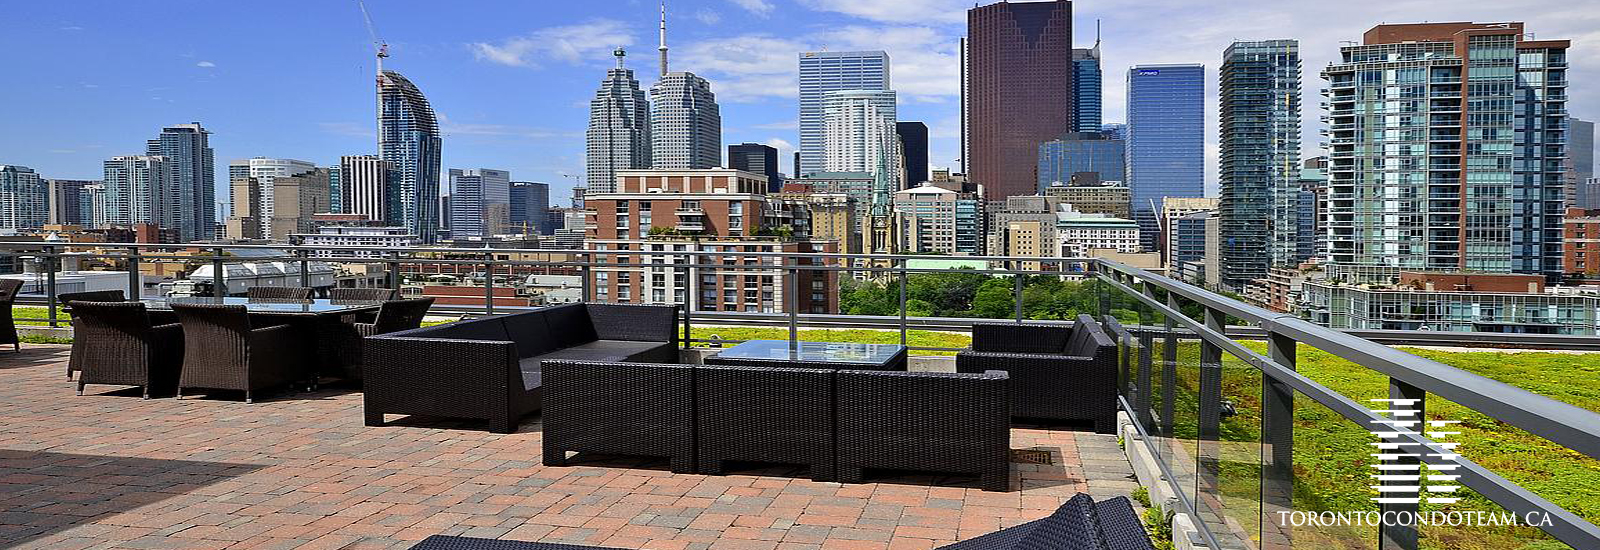 205 Frederick Street Condos For Sale